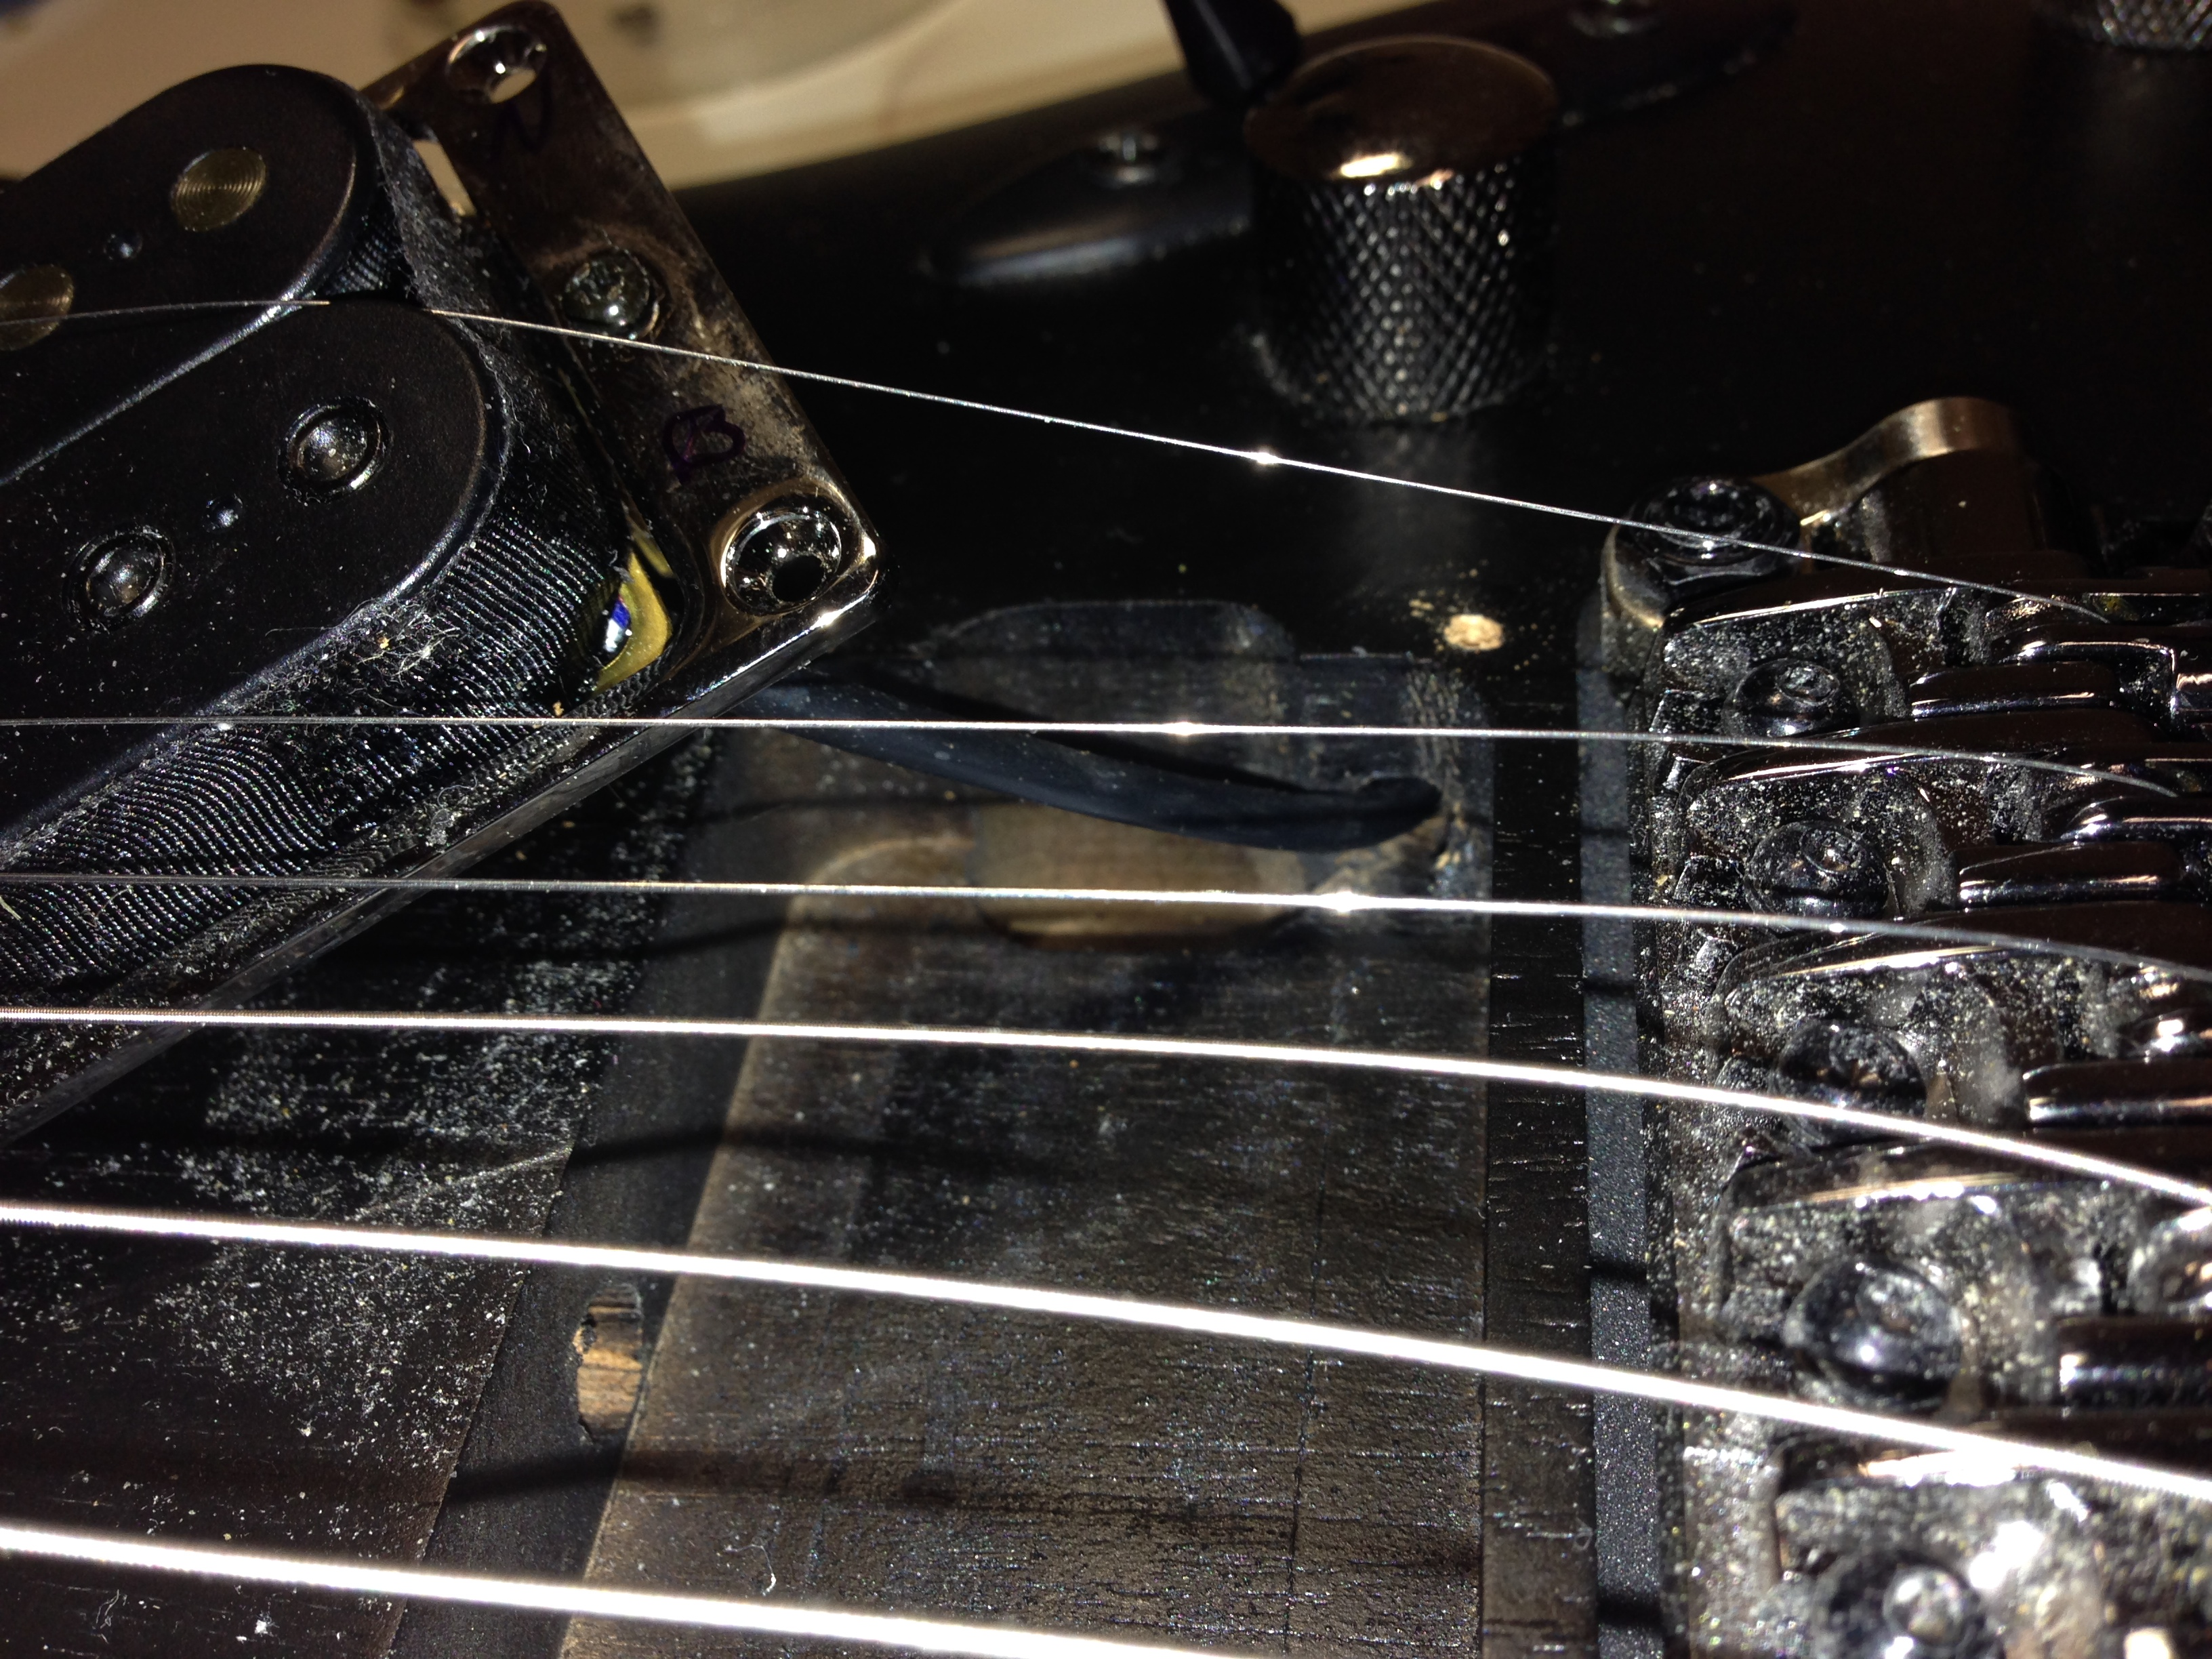 Changing the Pickups in an Ibanez S420 Guitar – The inability to ...